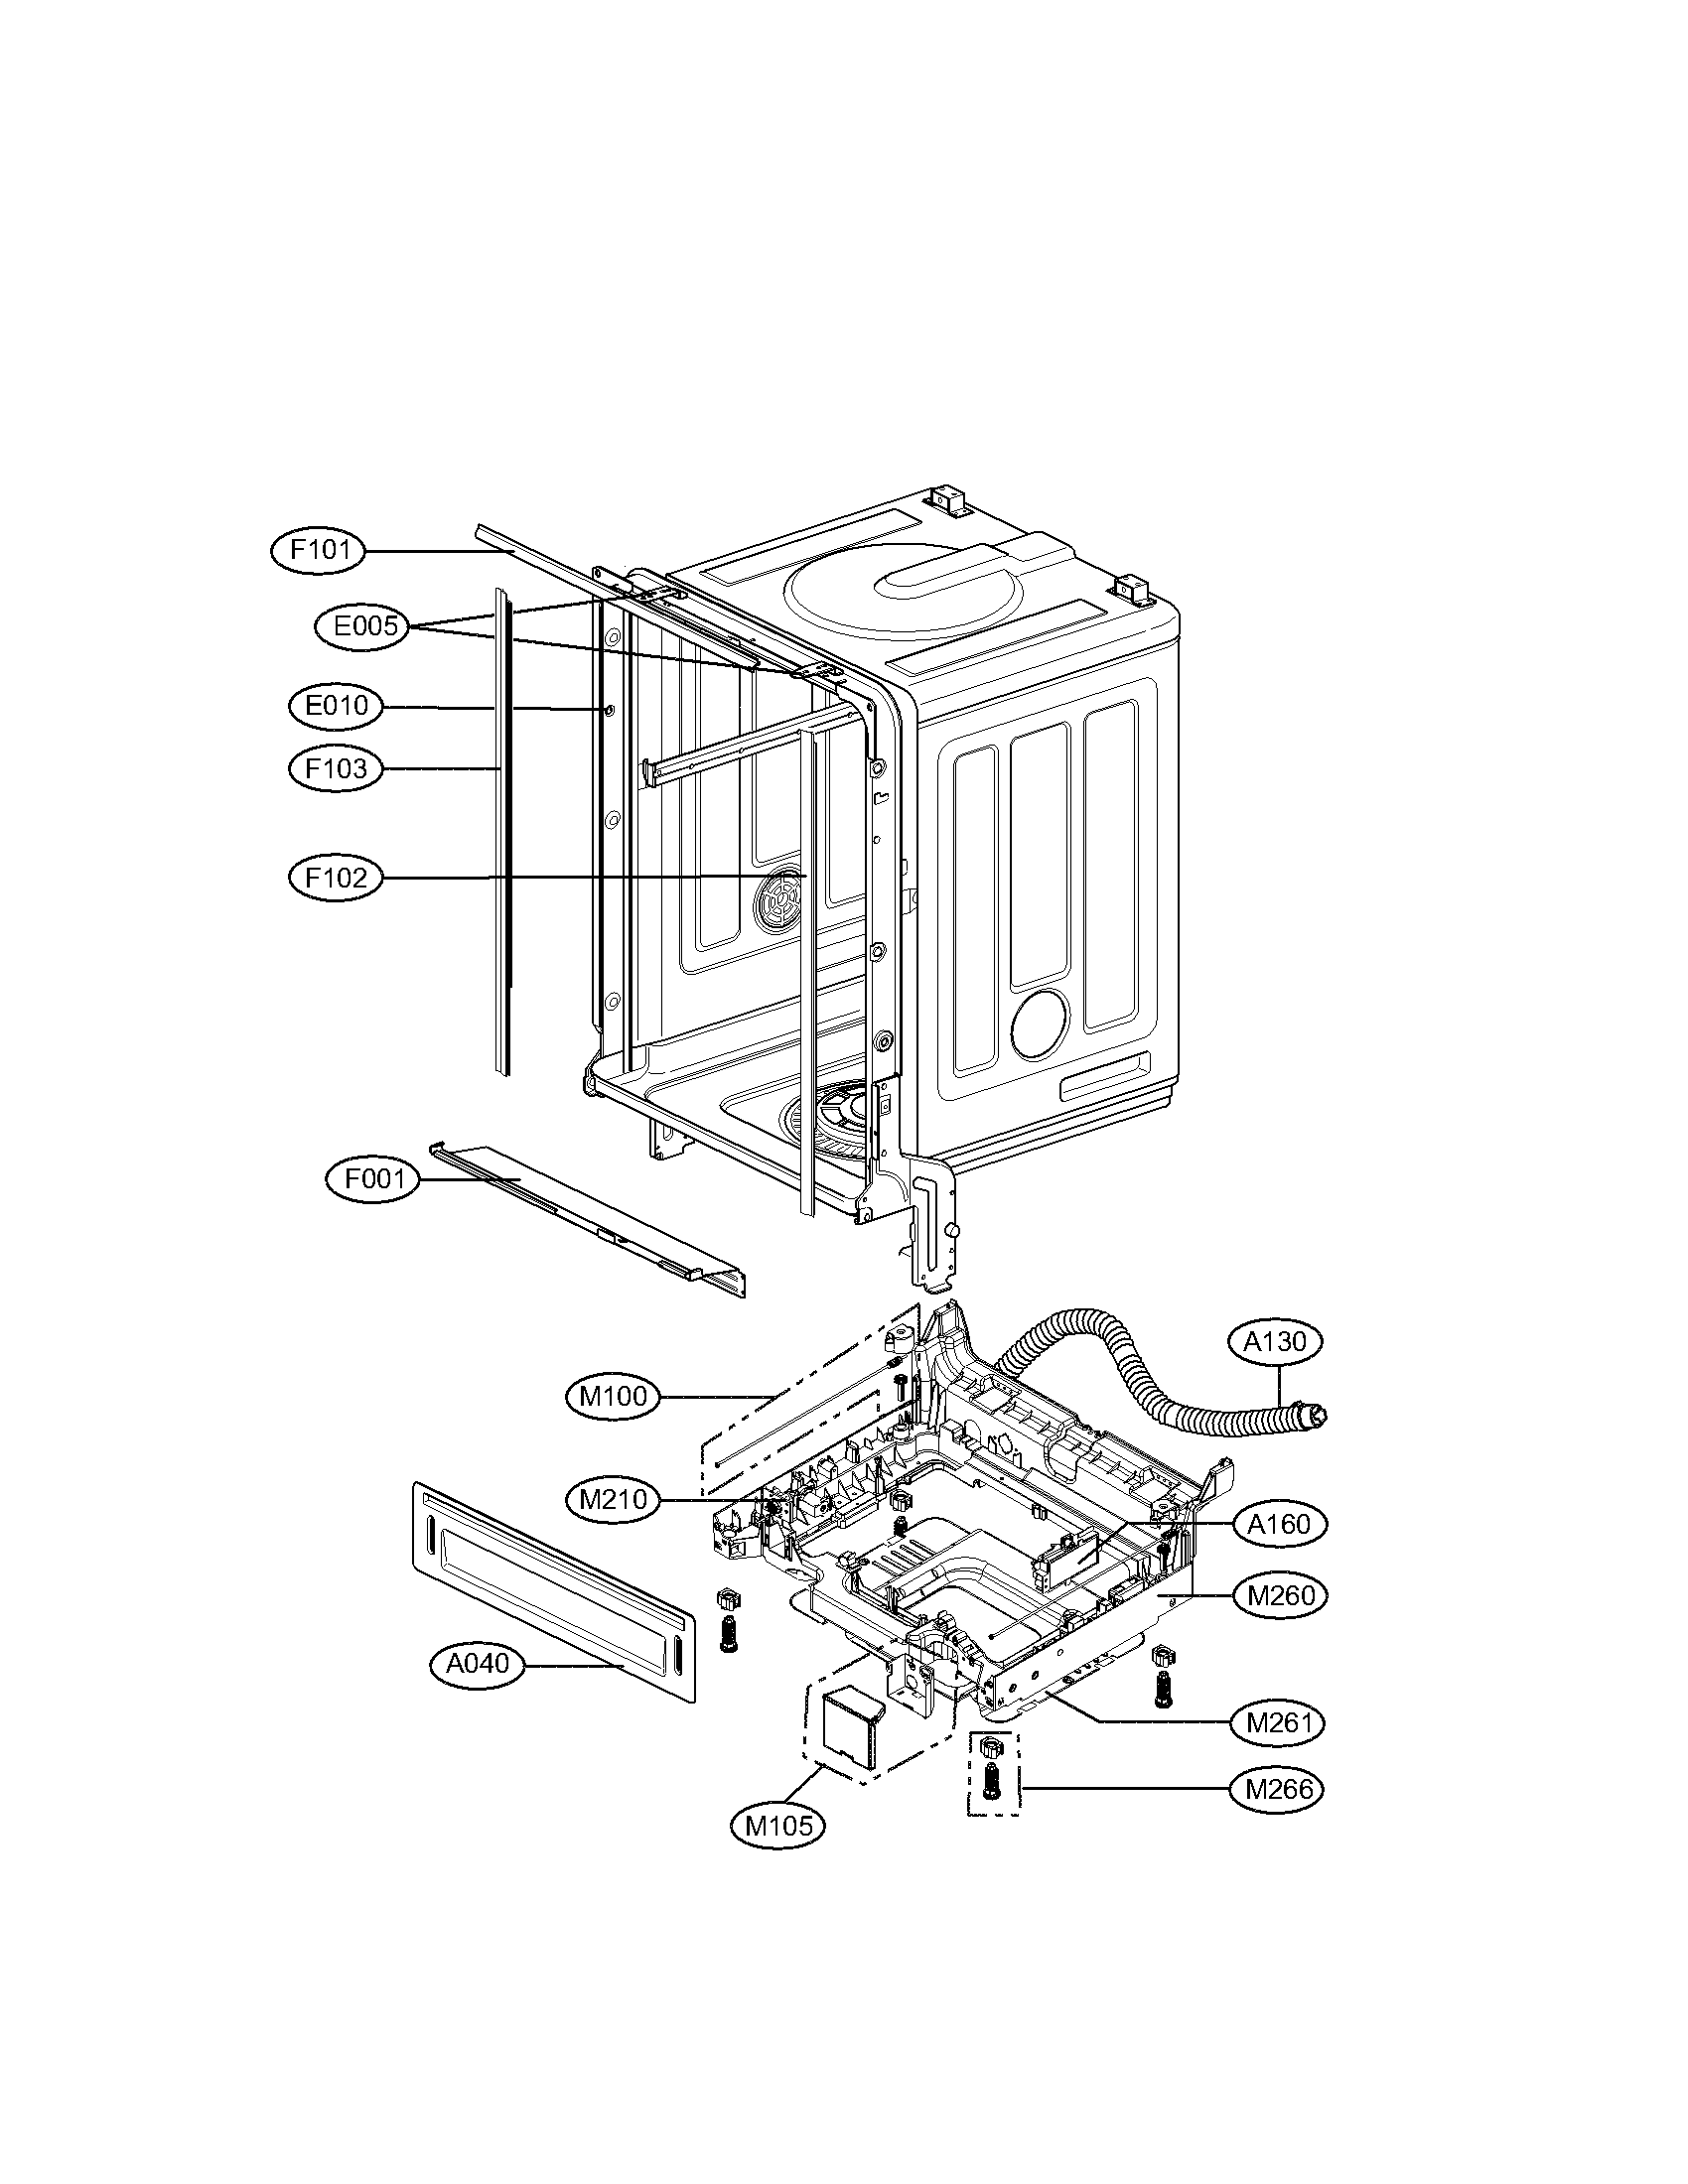 Lg model LDS4821BB dishwasher genuine parts